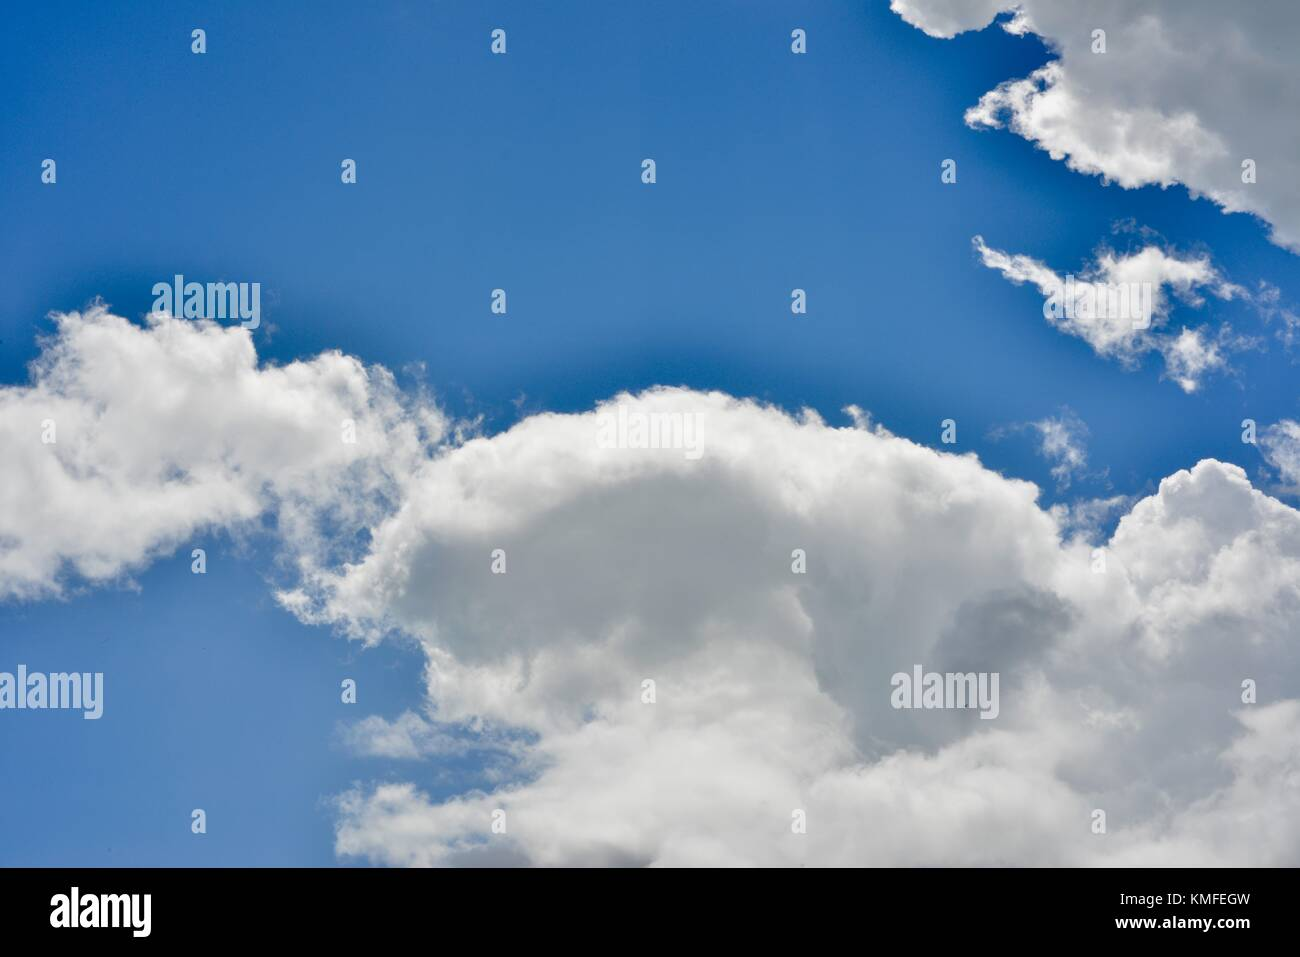 Blue sky contrasting with silver grey clouds in a skyscape, Townsville, Queensland, Australia - Stock Image